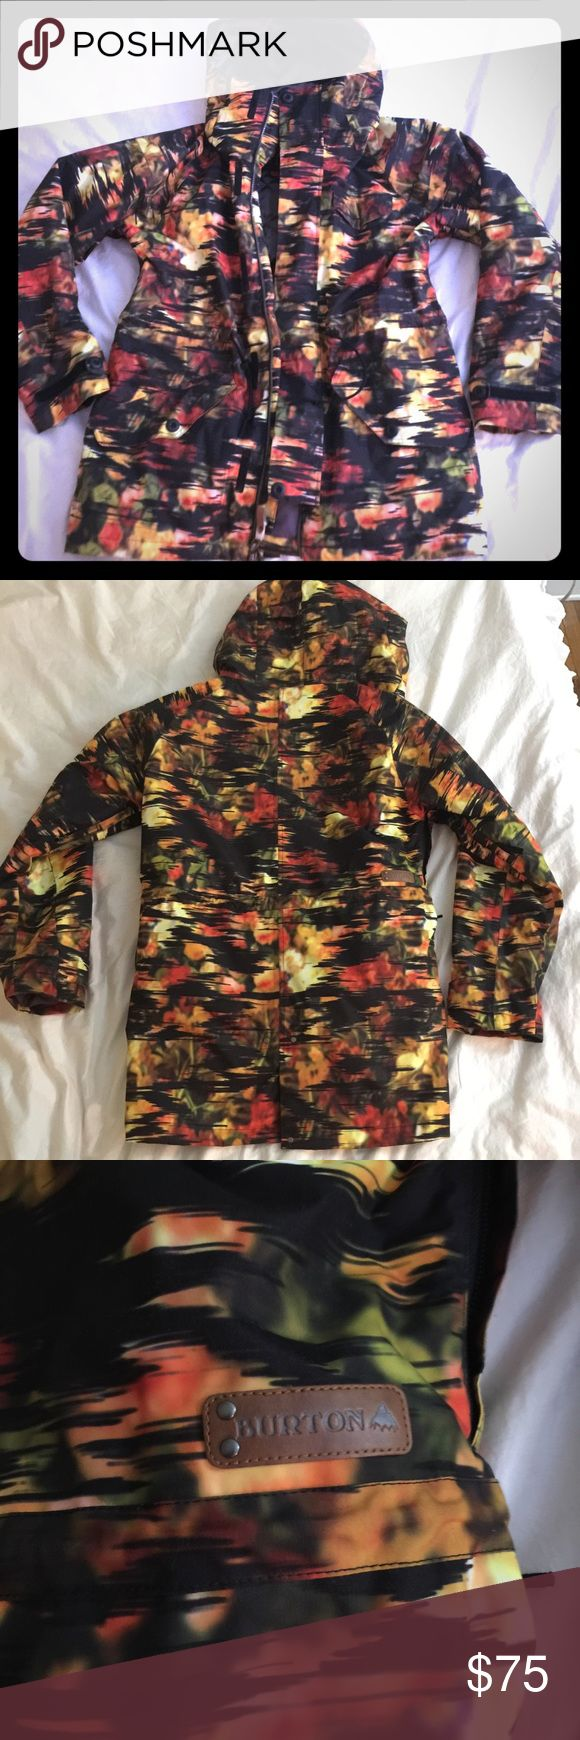 """🏂Holiday Sale⛷ Burton Snowboard Jacket Mens 🛍 EVERYTHING MUST GO!! **Donating closet on 12/31**  ❄️SALE❄️ Burton Ski / Snowboard jacket. Mens Sz Large. Never used. EXCELLENT Condition.   ⭐️⭐️⭐️⭐️⭐️ Top Rated Seller 📦⚡️Fast Shipping (same/next day) Smoke-Free, Pet-Free 🏡 🛍 Bundle for discount Sorry ⛔️ tradesies, every 💵 counts right now ↬ Reasonable offers welcome via """"Offer"""" button Burton Jackets & Coats Ski & Snowboard"""